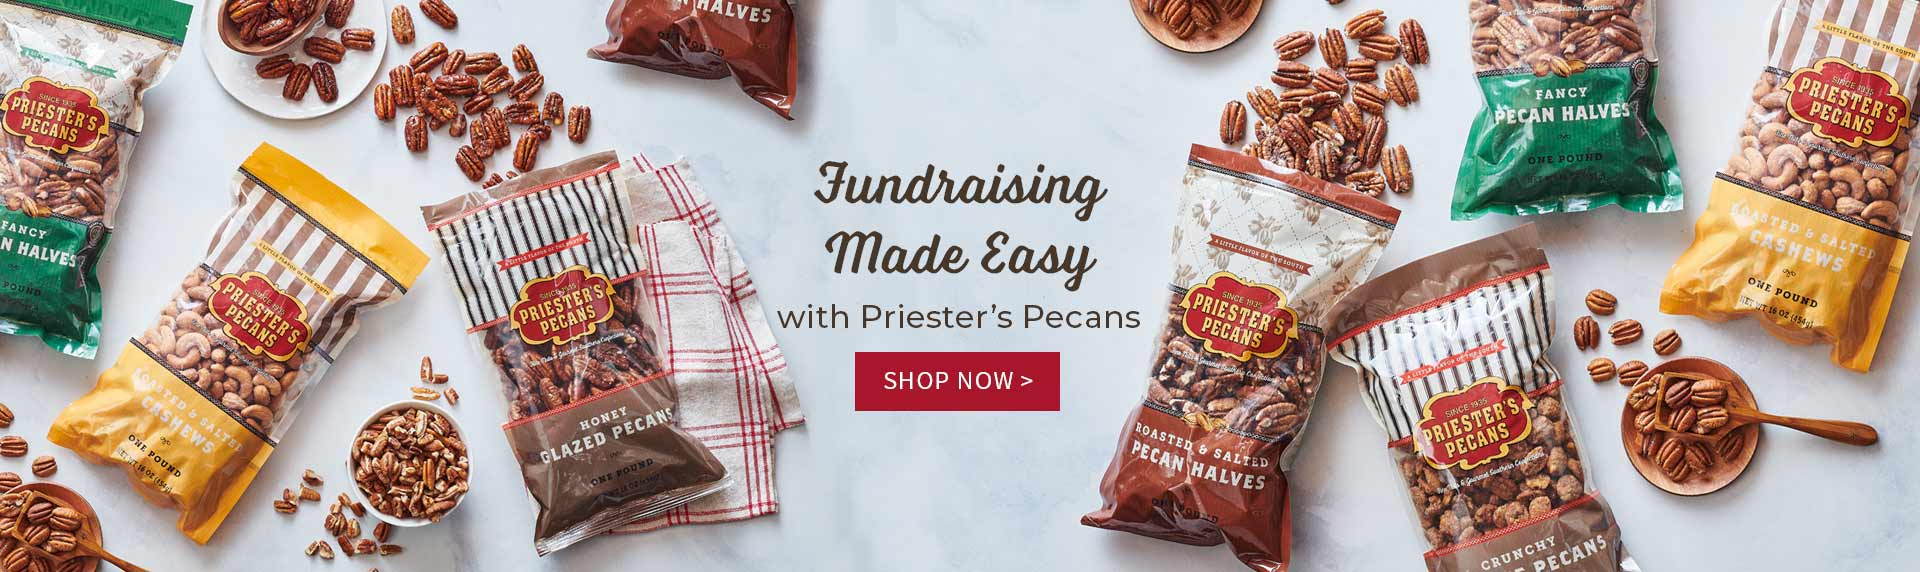 Fundraising Made Easy with Priester's Pecans - Shop Now >